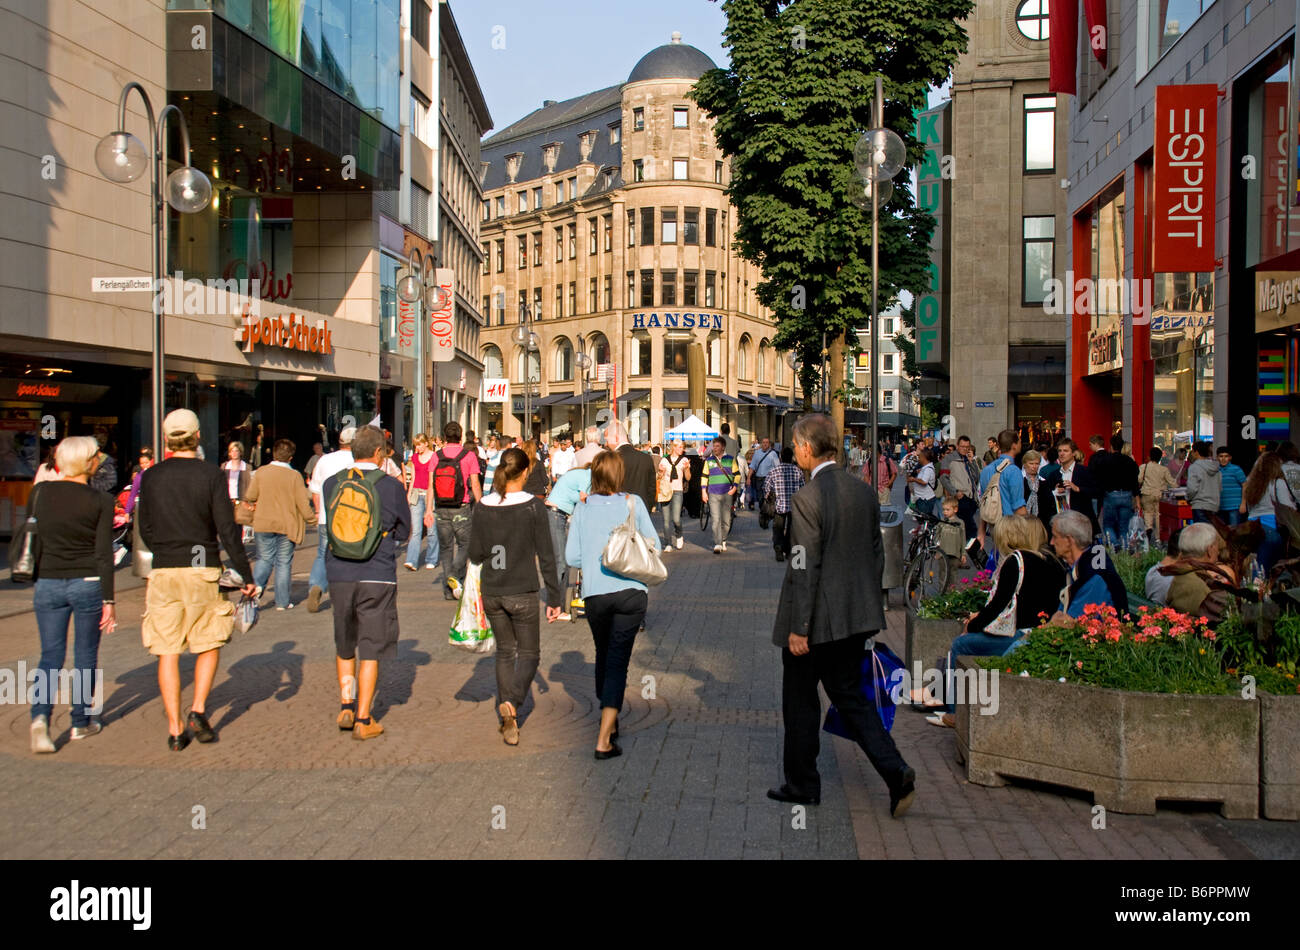 cologne pedestrian shopping street in downtown central city stock photo 21399081 alamy. Black Bedroom Furniture Sets. Home Design Ideas